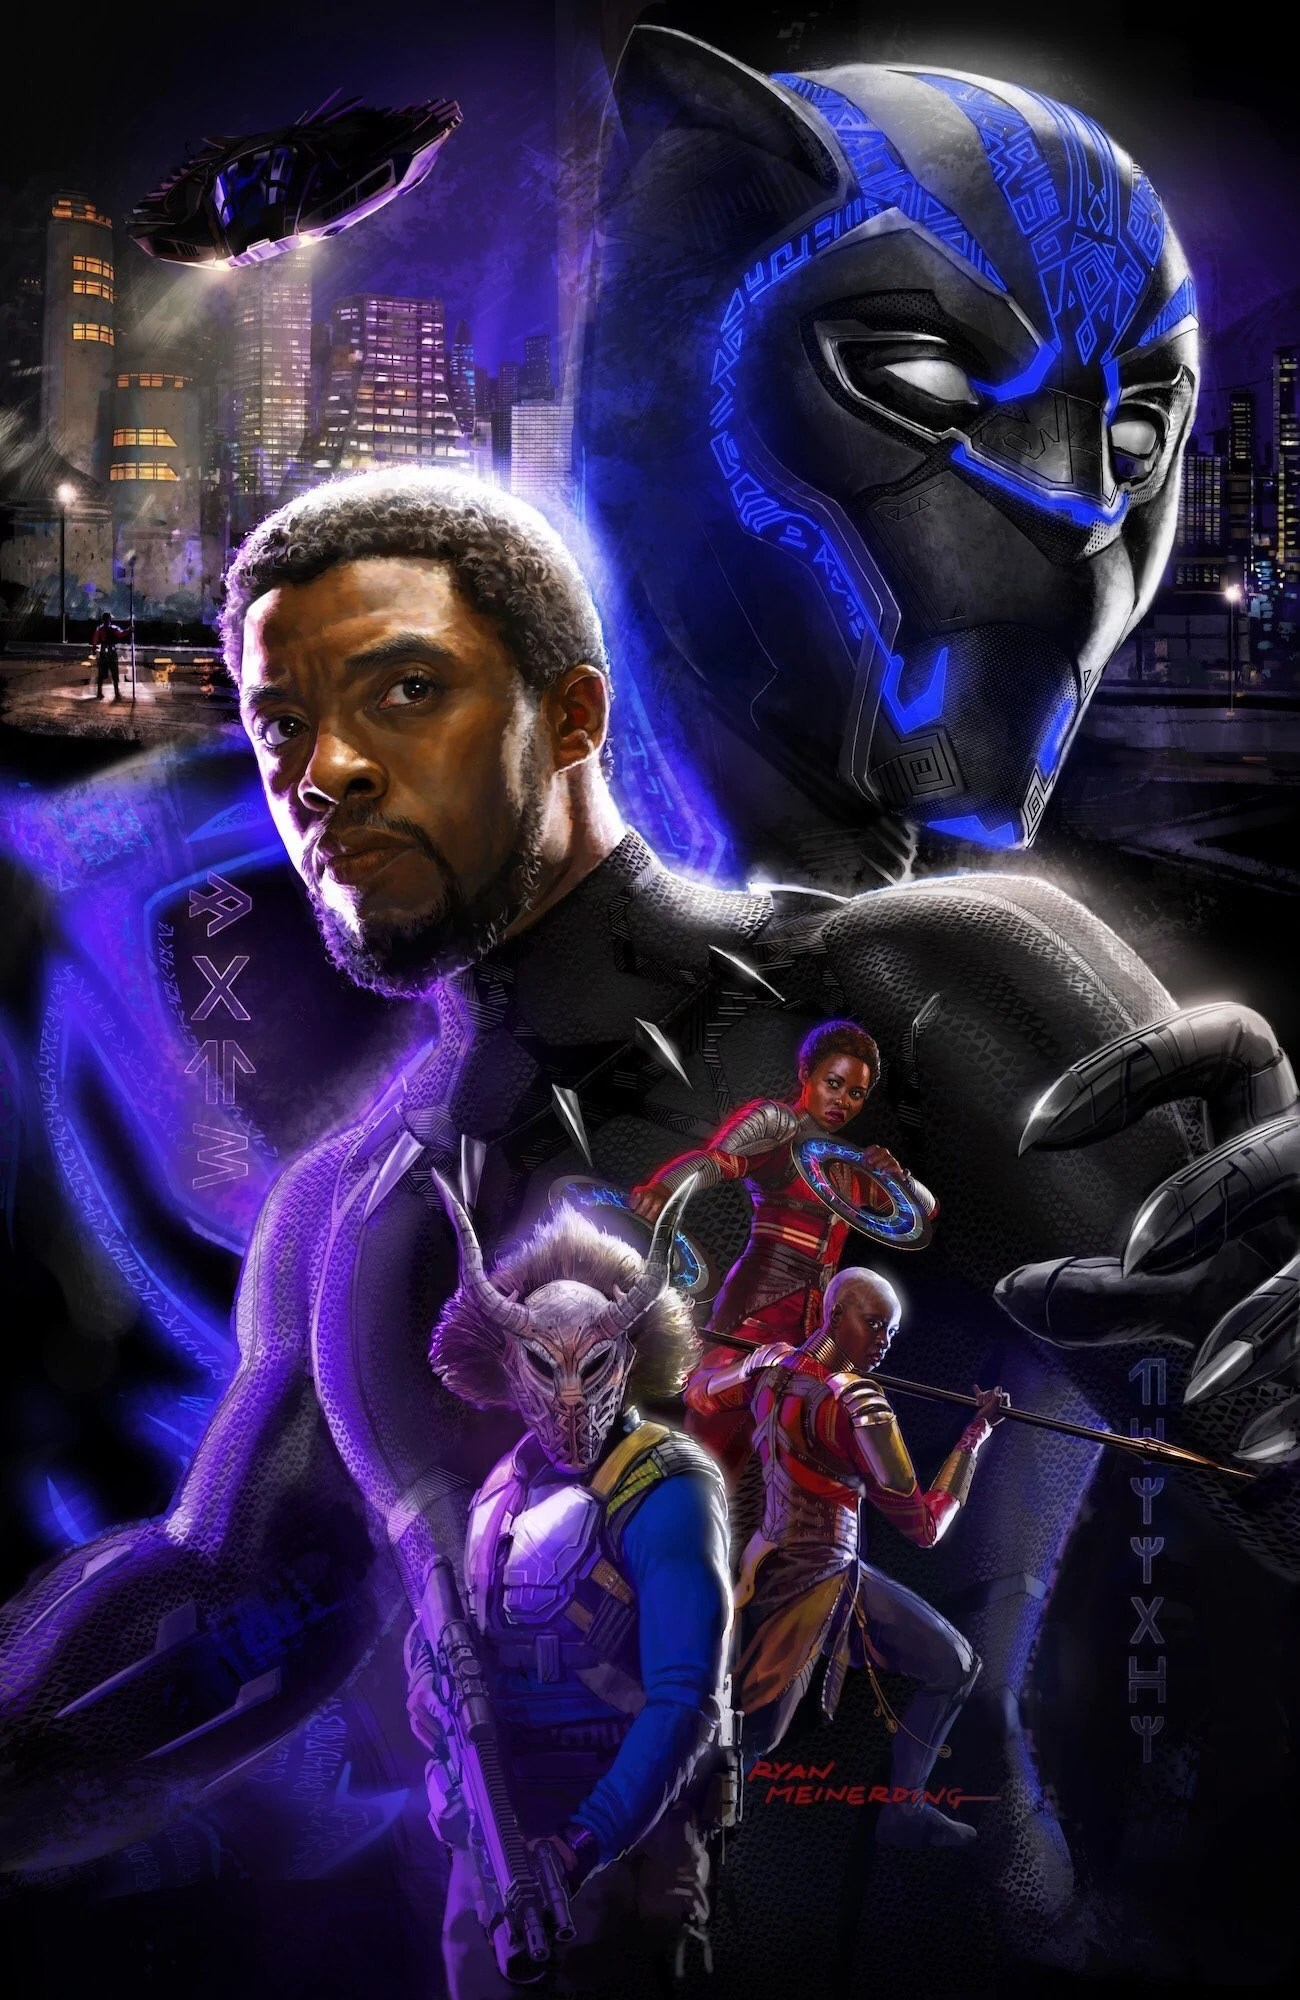 Warrior Falls Mcu Wallpaper Image Black Panther Poster Art Jpg Disney Wiki